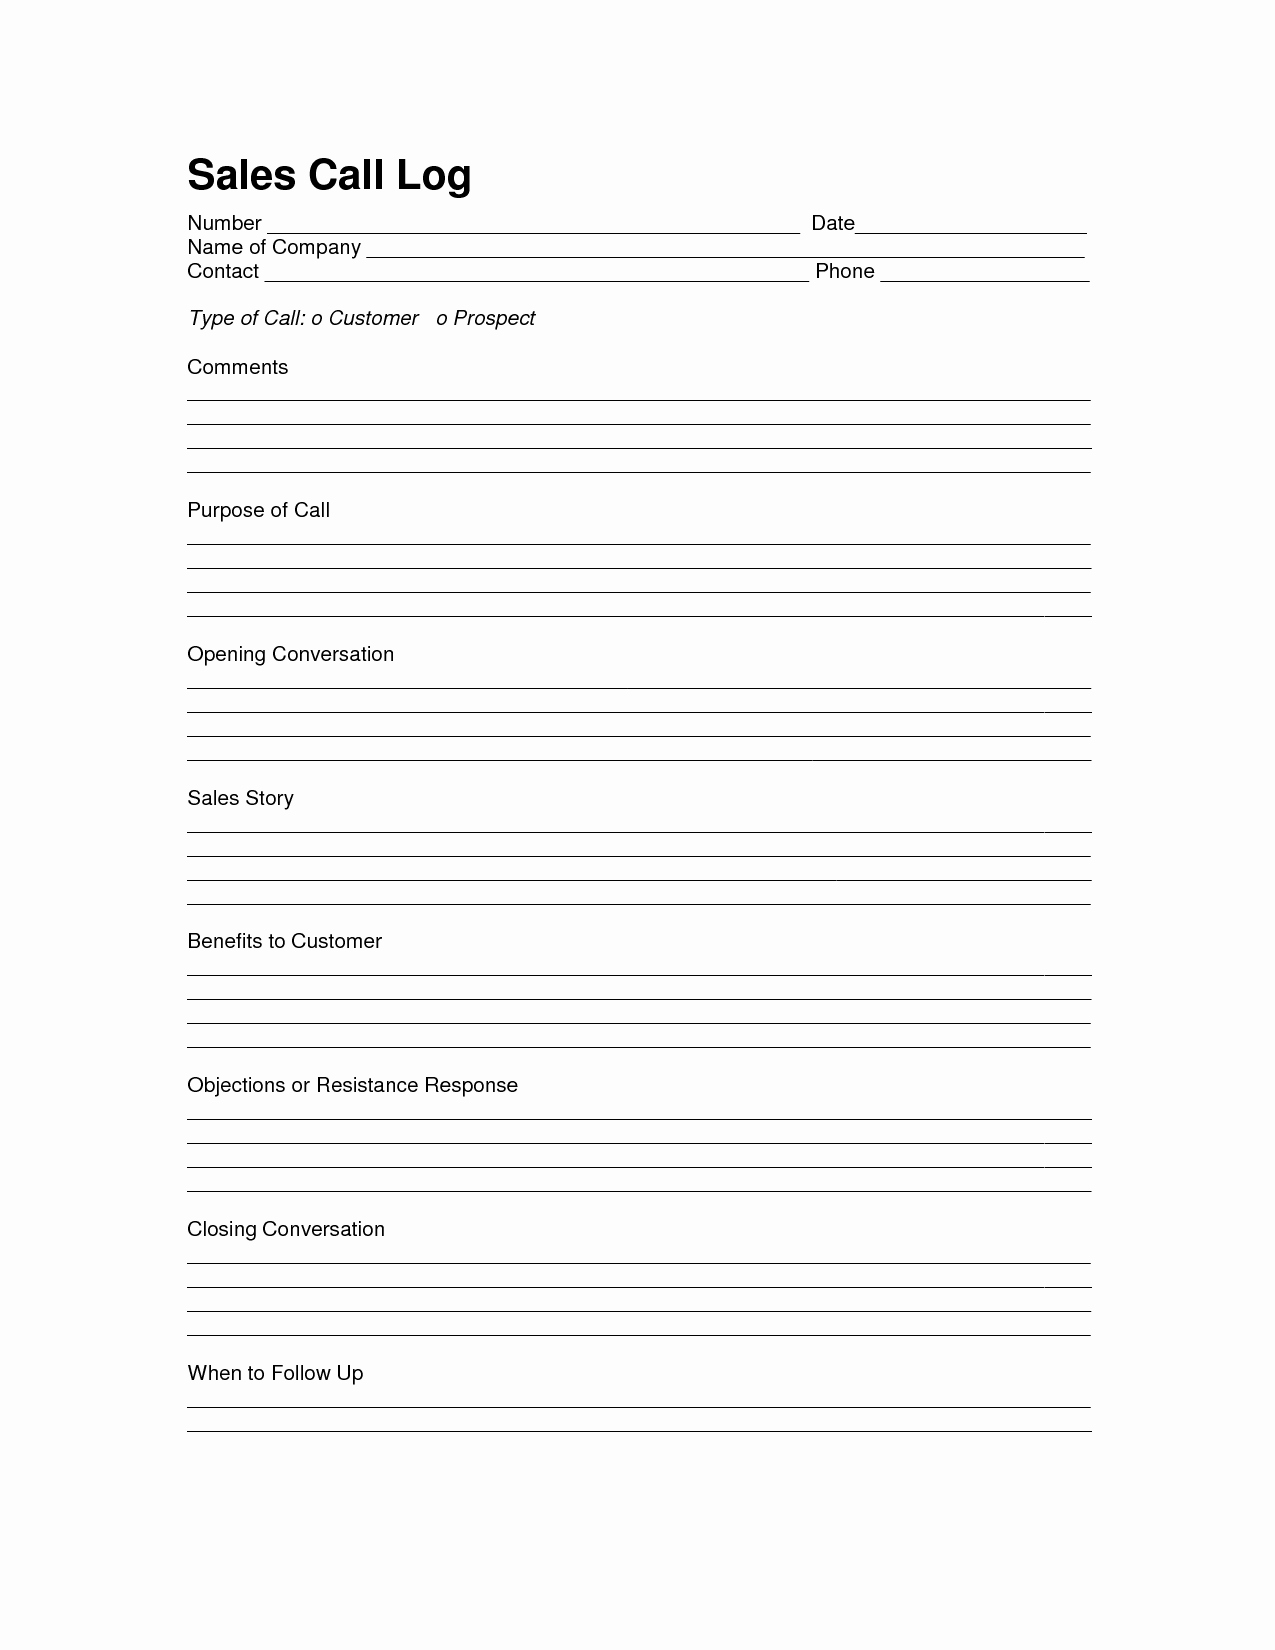 Sales Lead form Template Best Of Sales Log Sheet Template Sales Call Log Template